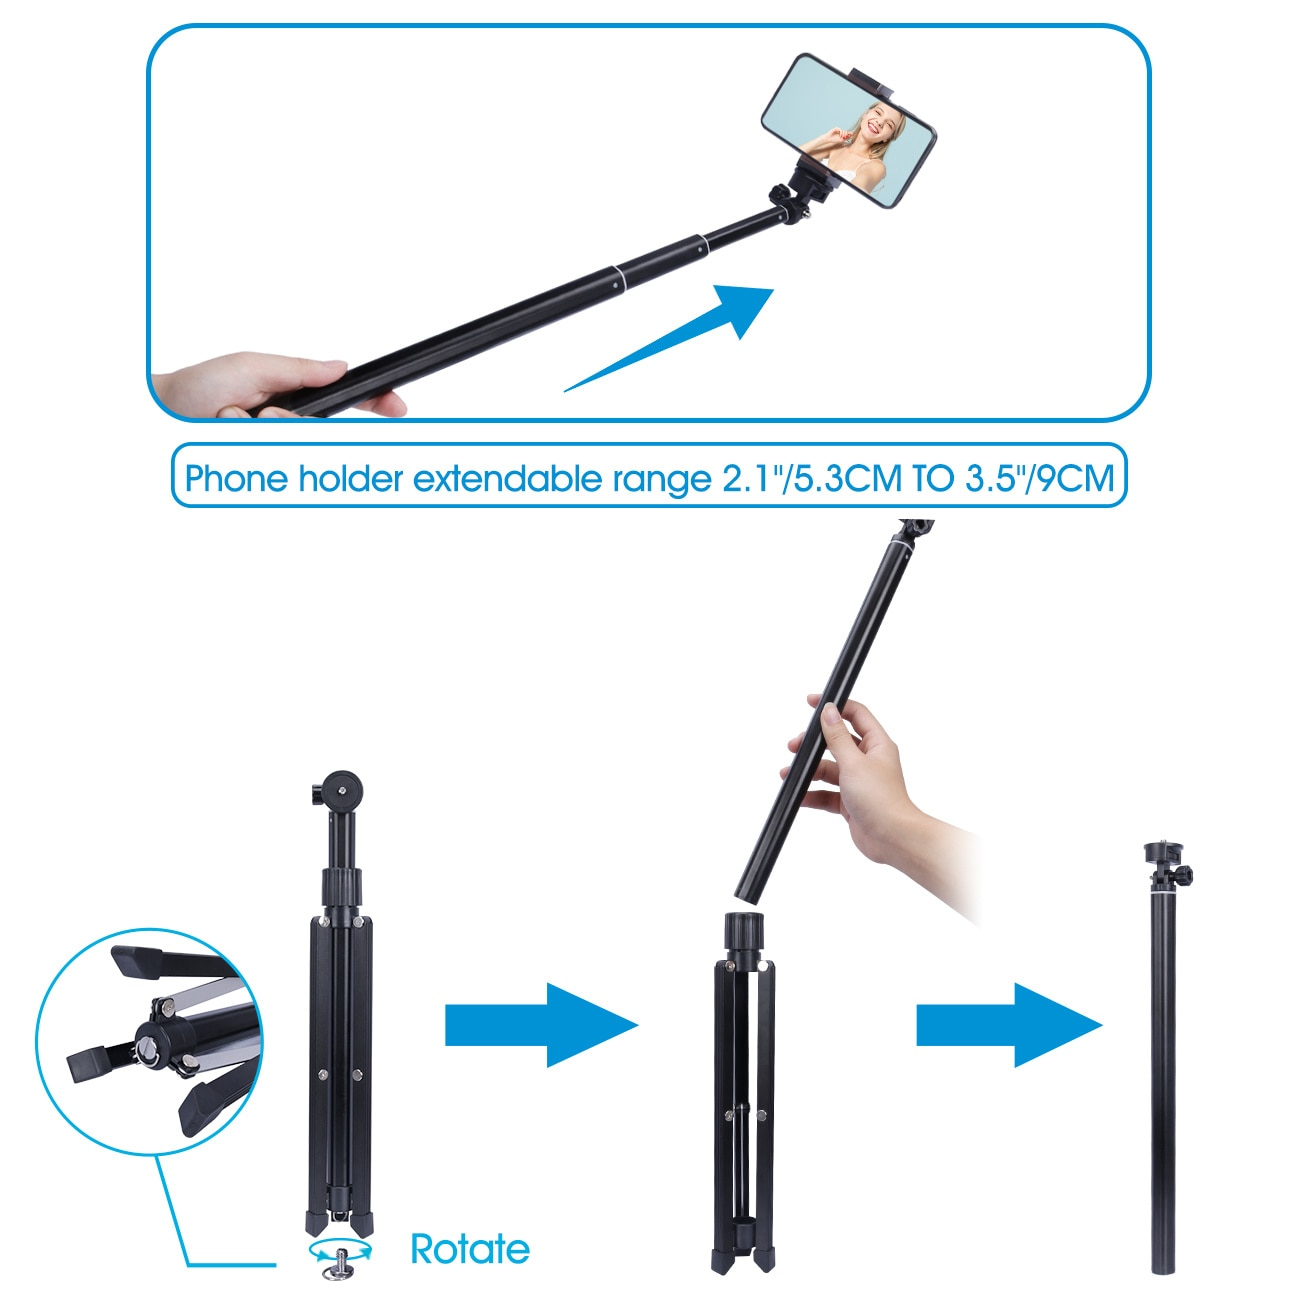 160cm Alloy Portable Phone Tripod Stand, Selfie Tripod Stick with Phone Holder Bluetooth Remote & Gopro Mount for Phone enlarge